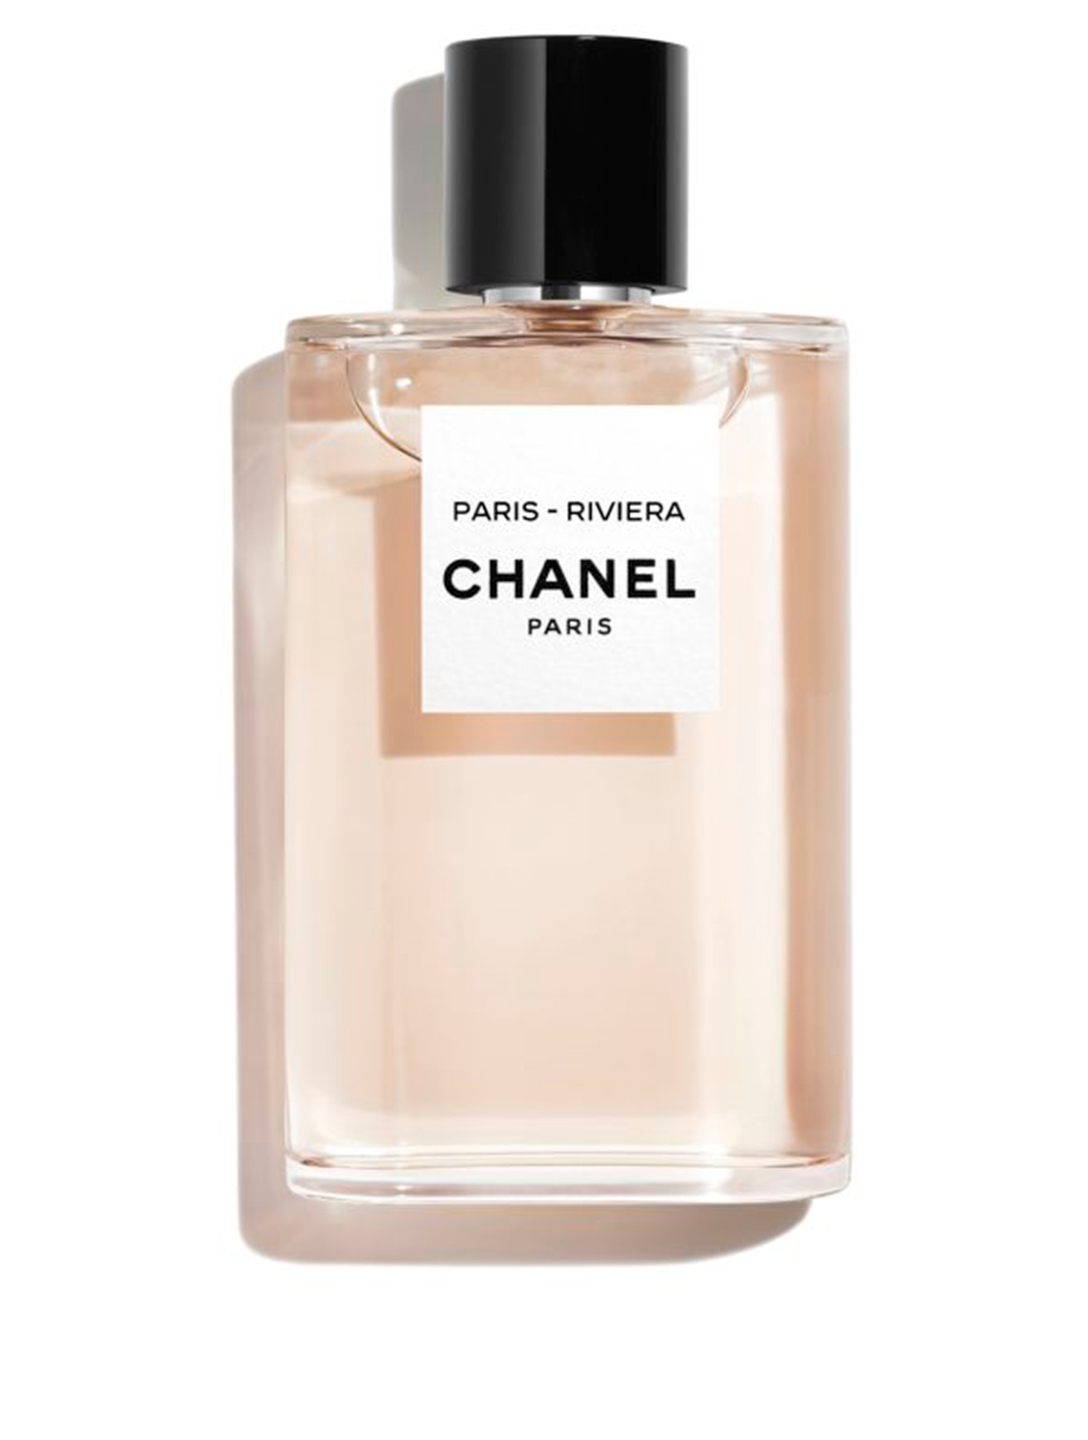 CHANEL Les Eaux De Chanel - Eau De Toilette Spray CHANEL No Color